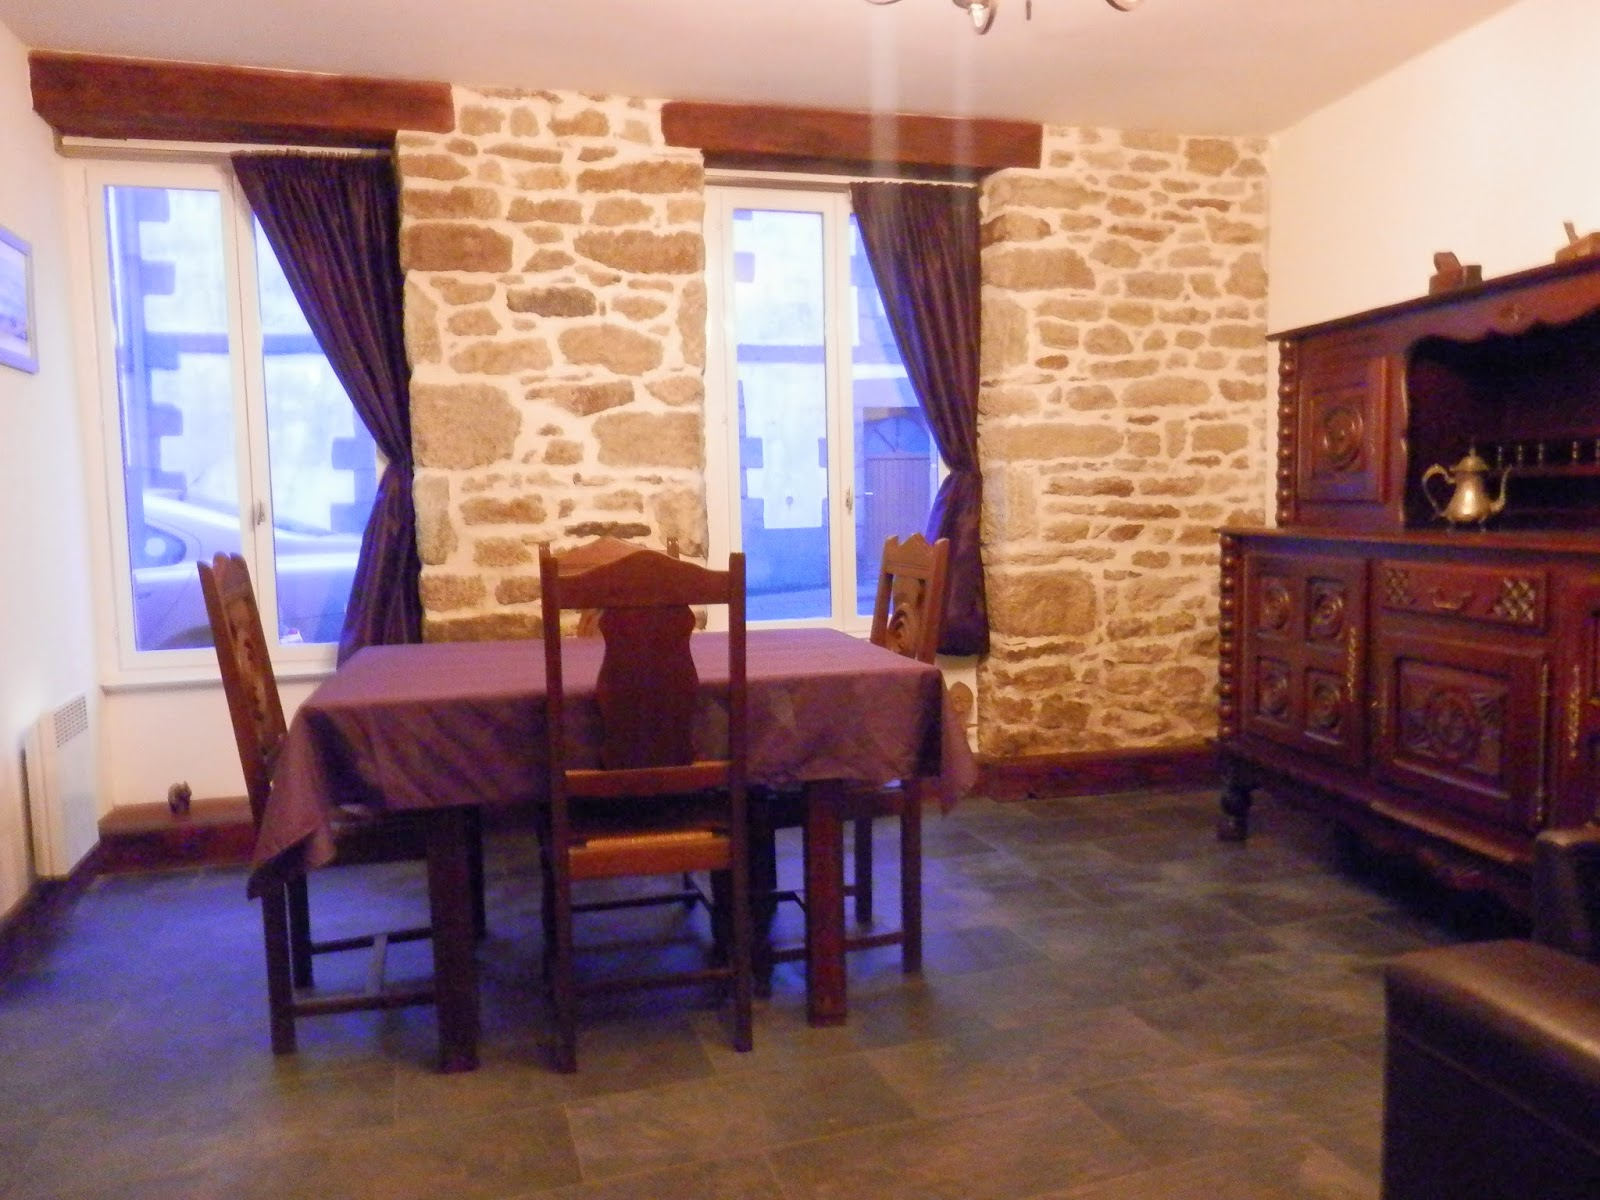 B&B for sale France (Huelgoat 29690)